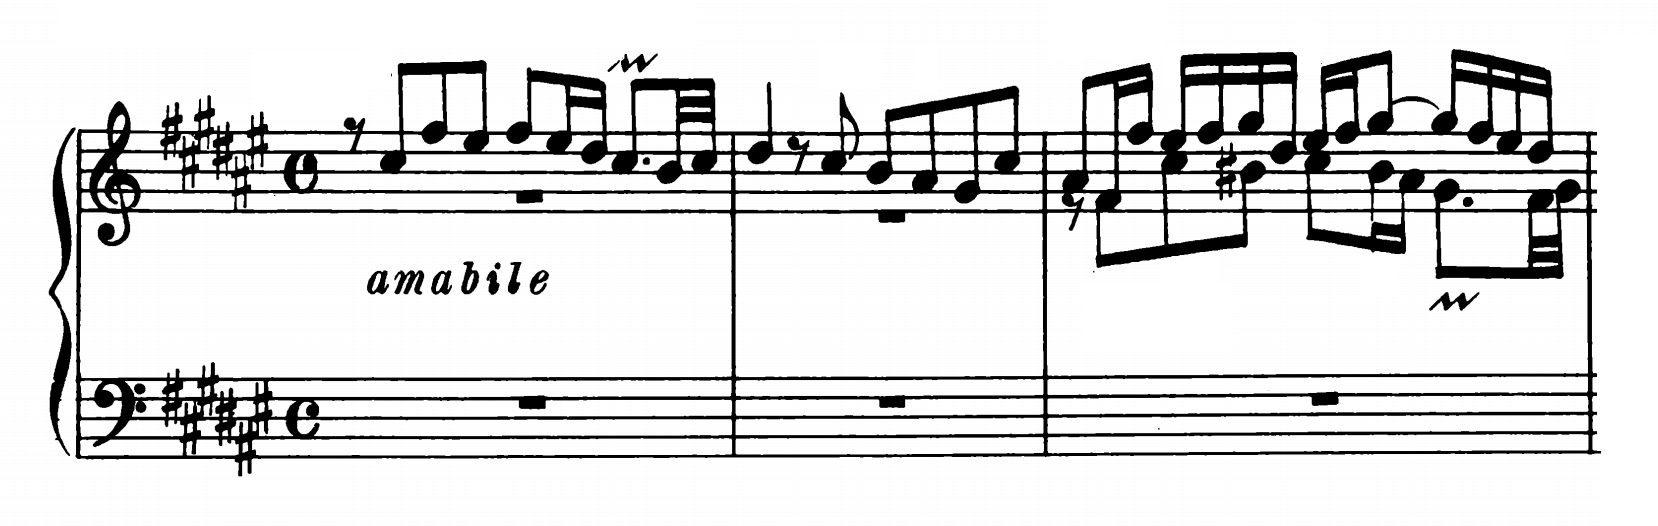 Bach Prelude and Fugue No.20 in F♯ major, BWV 20 Analysis